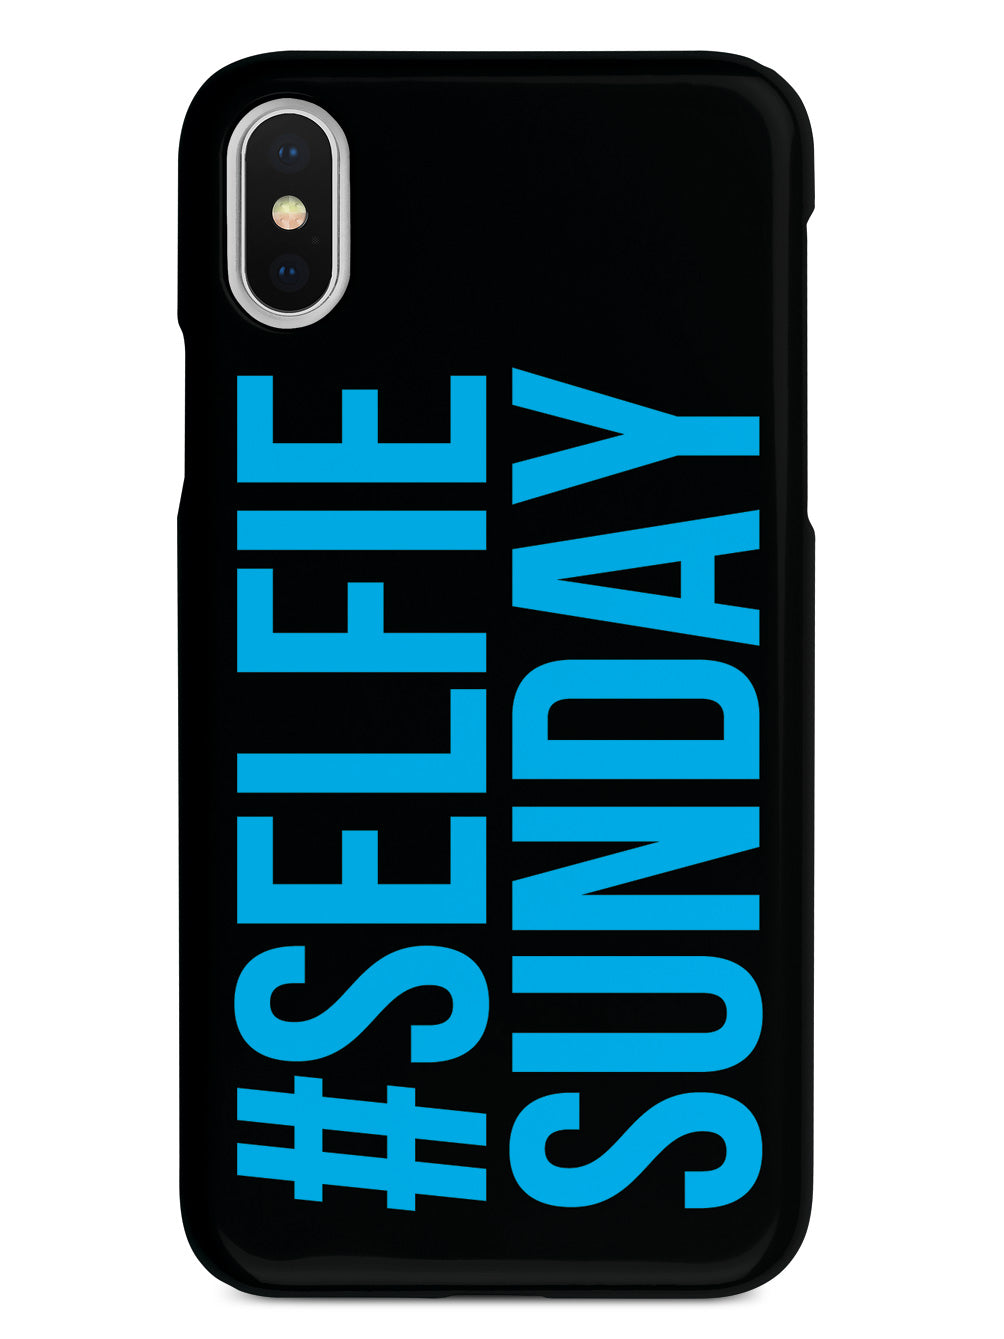 #SelfieSunday Blue Selfie Sunday   Case